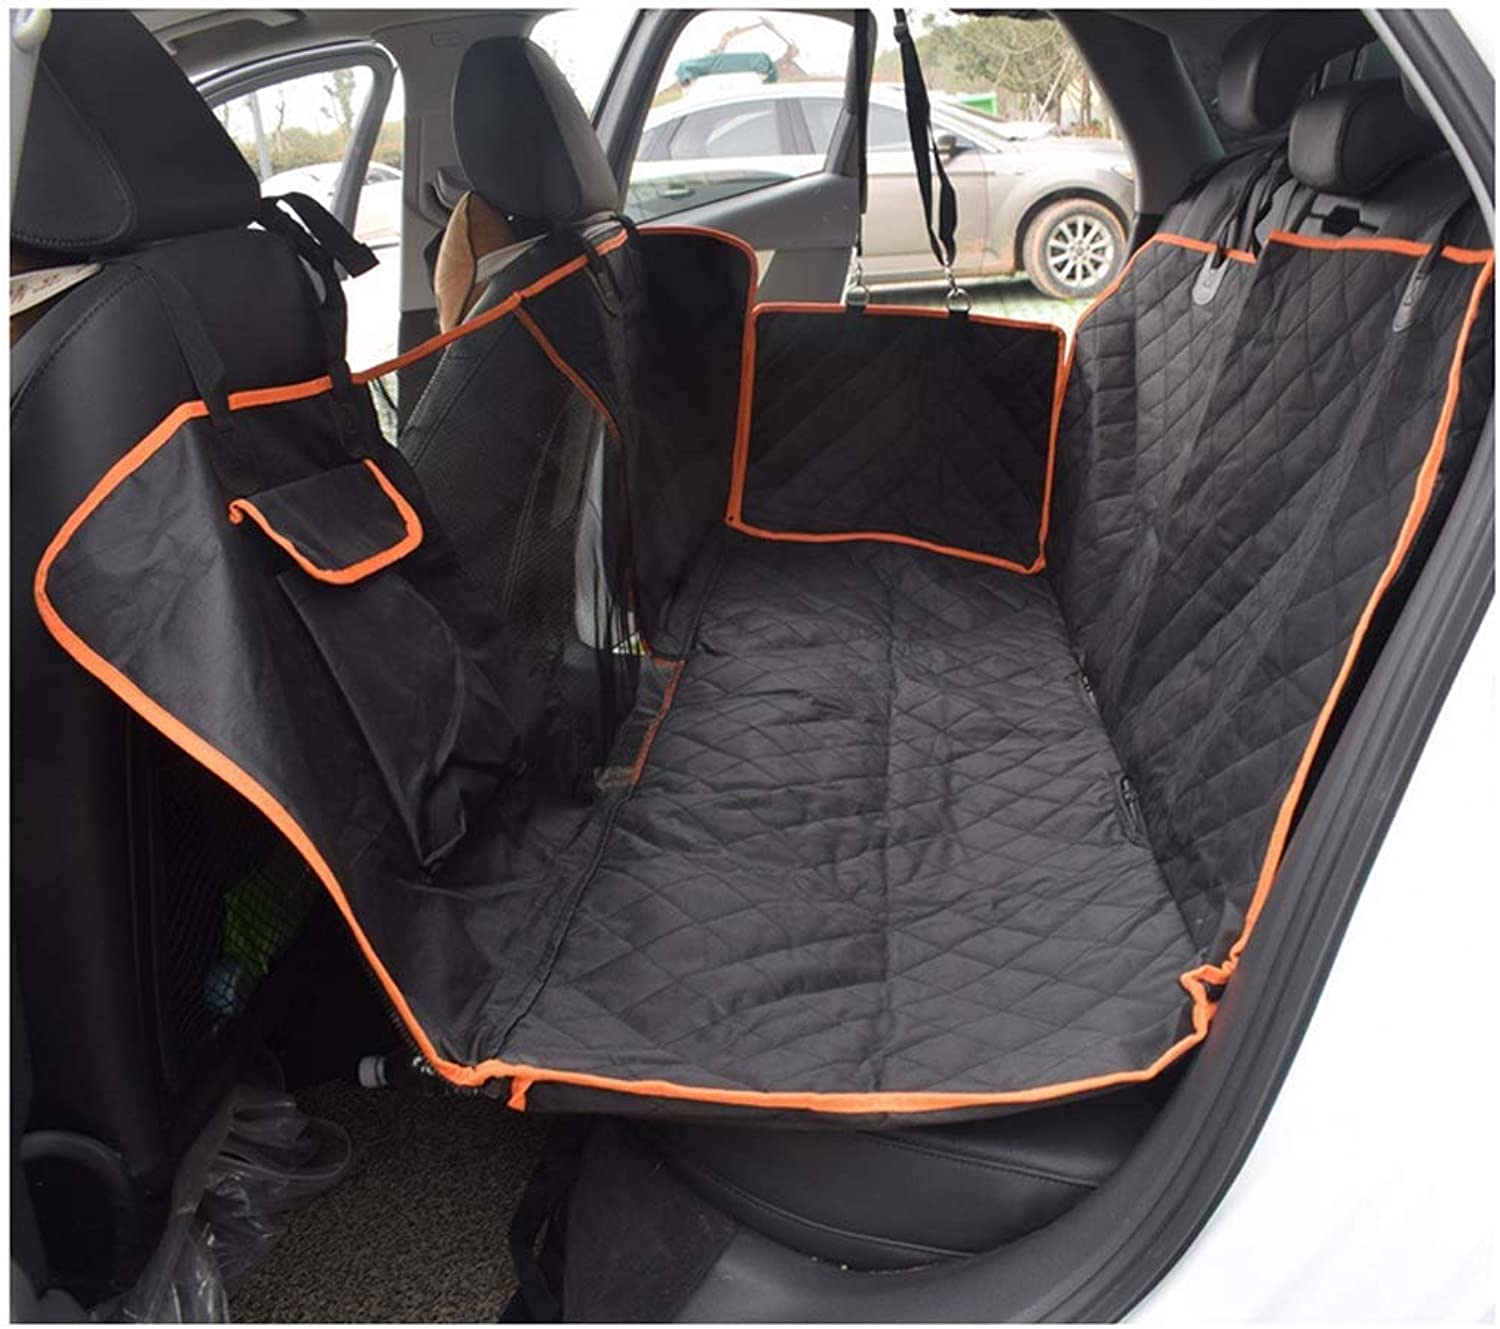 HOSHT Dog Car Seat Cover with Visible Window, Car Boot Predector Waterproof Scratch Proof Antiskid for Car Truck SUV